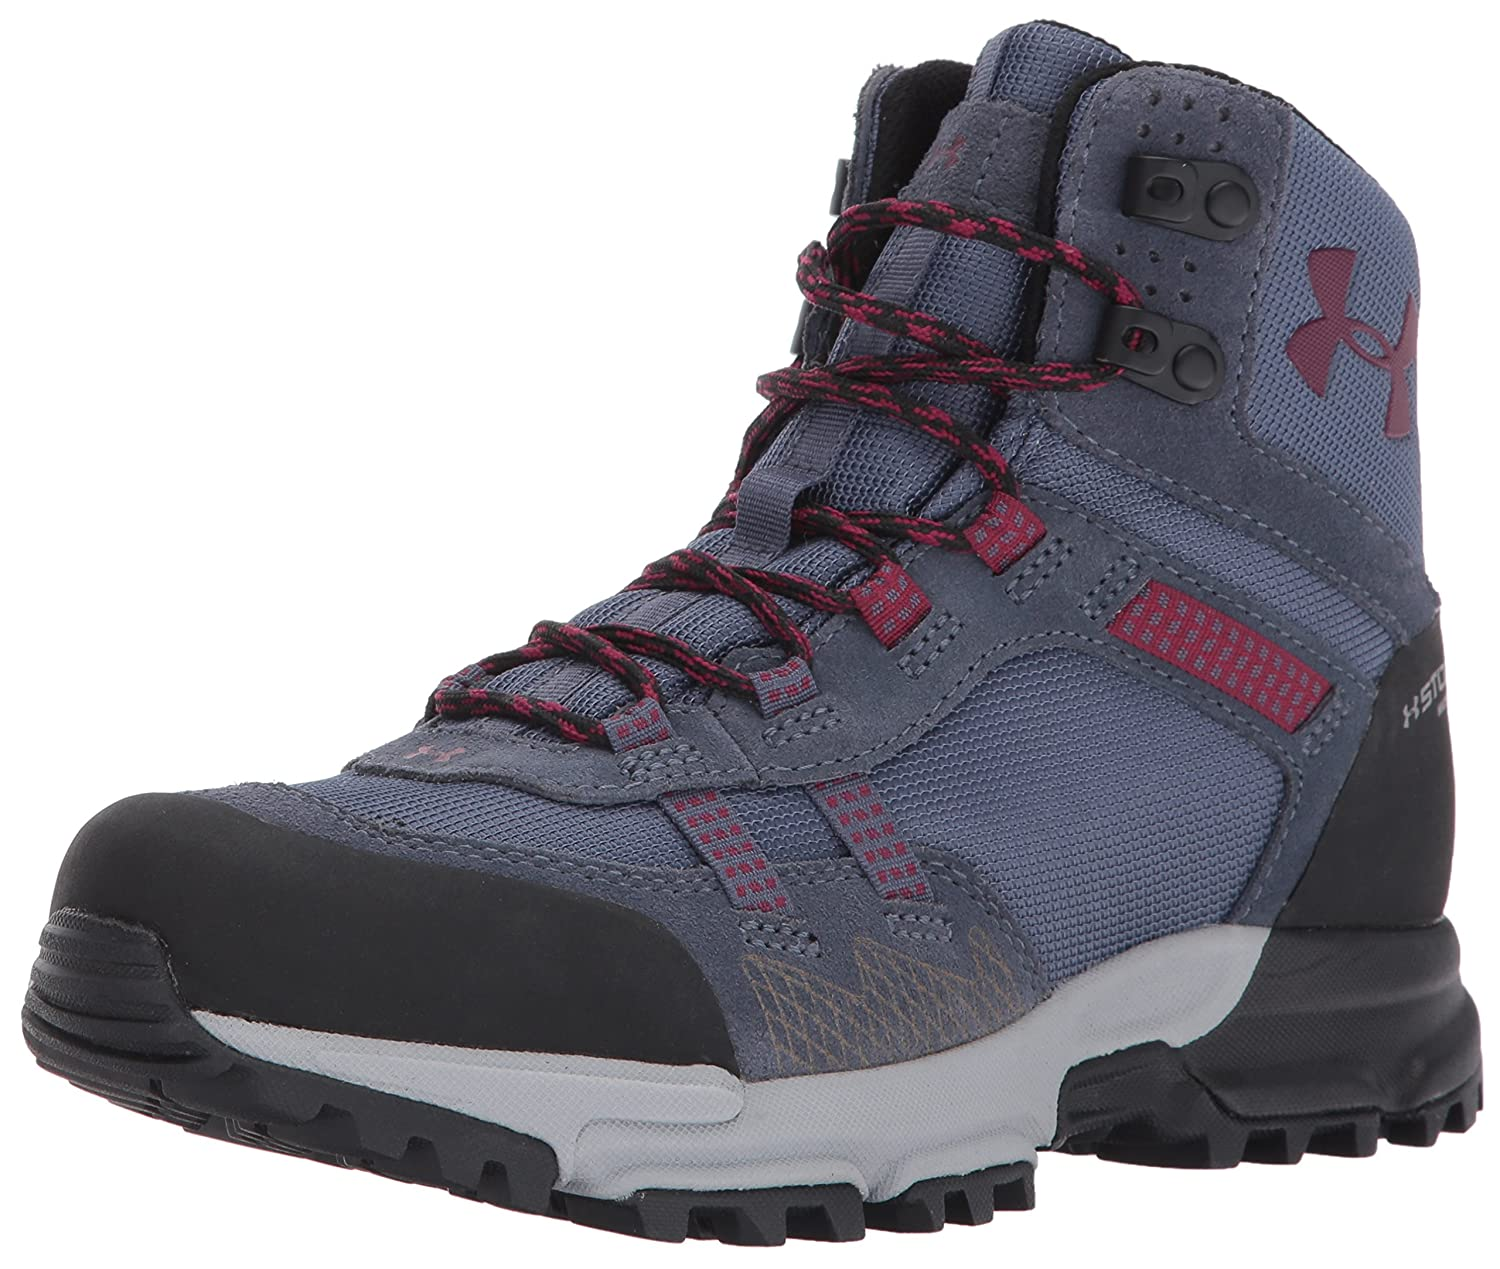 81e8360a44d Under Armour Mens Post Canyon Mid Waterproof Hiking Boot